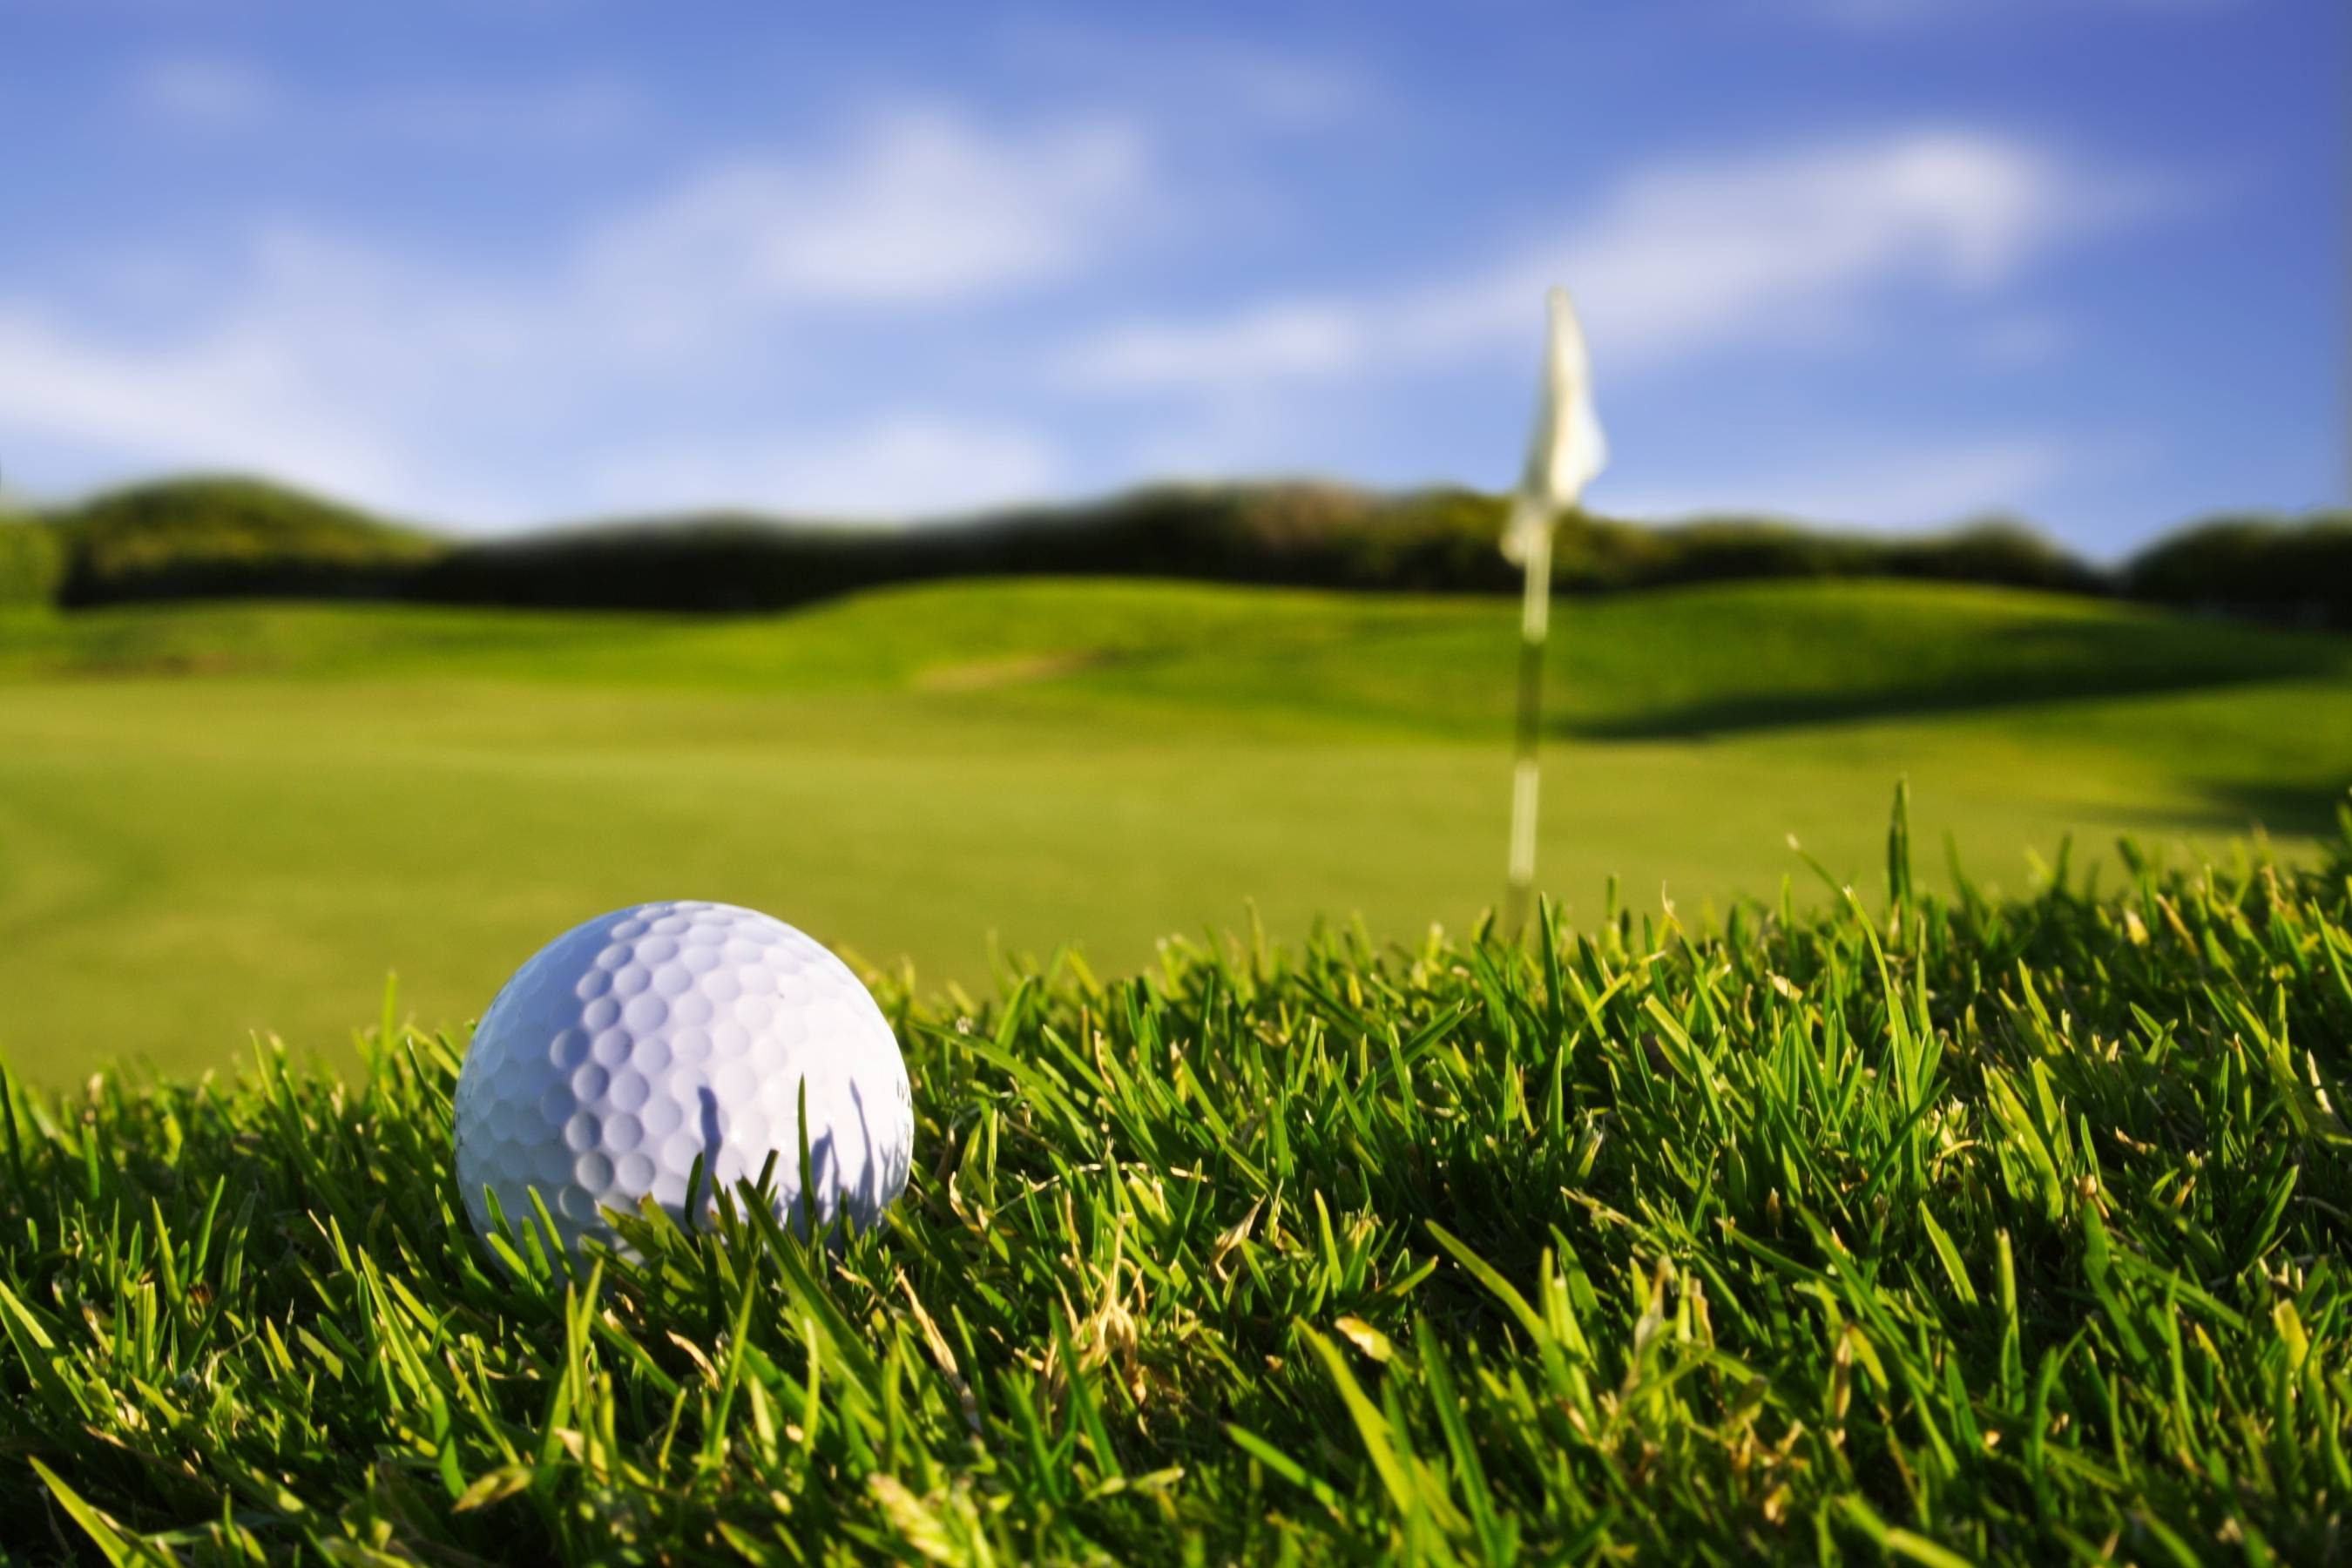 wallpapers for desktop backgrounds hd golf a· download